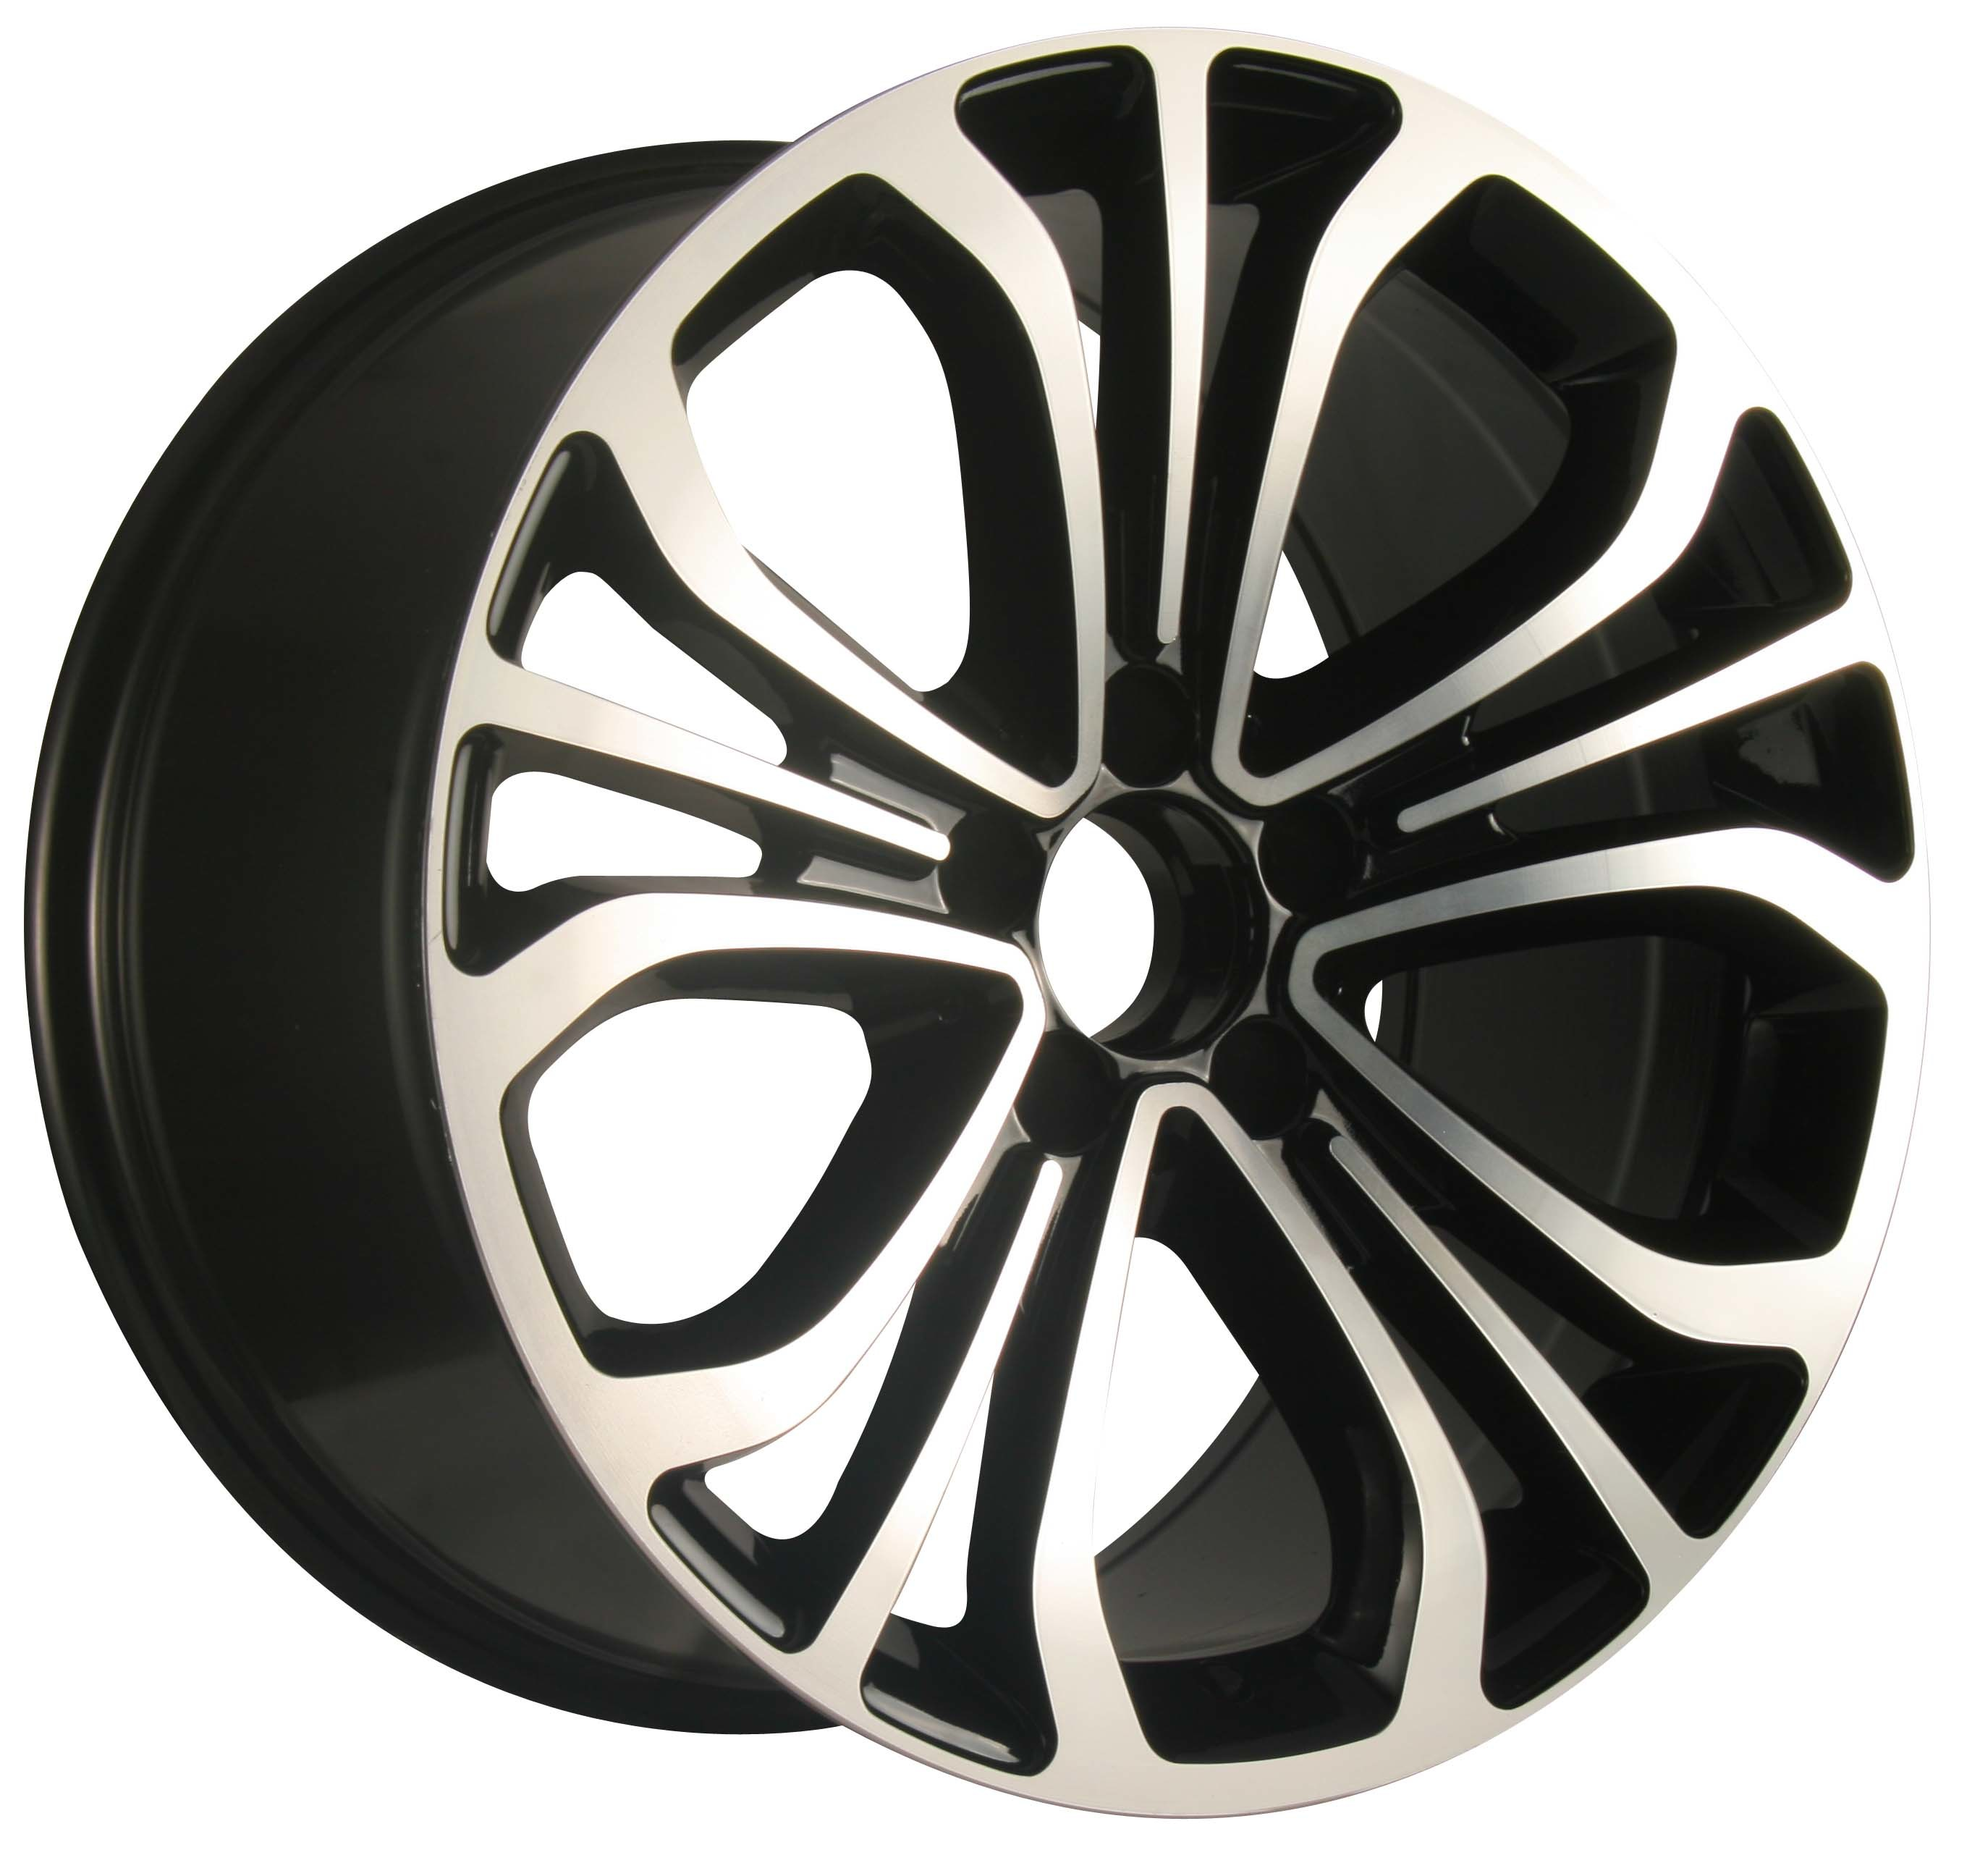 18inch and 19inch Alloy Wheel Replica Whee for Benz SLS Amg